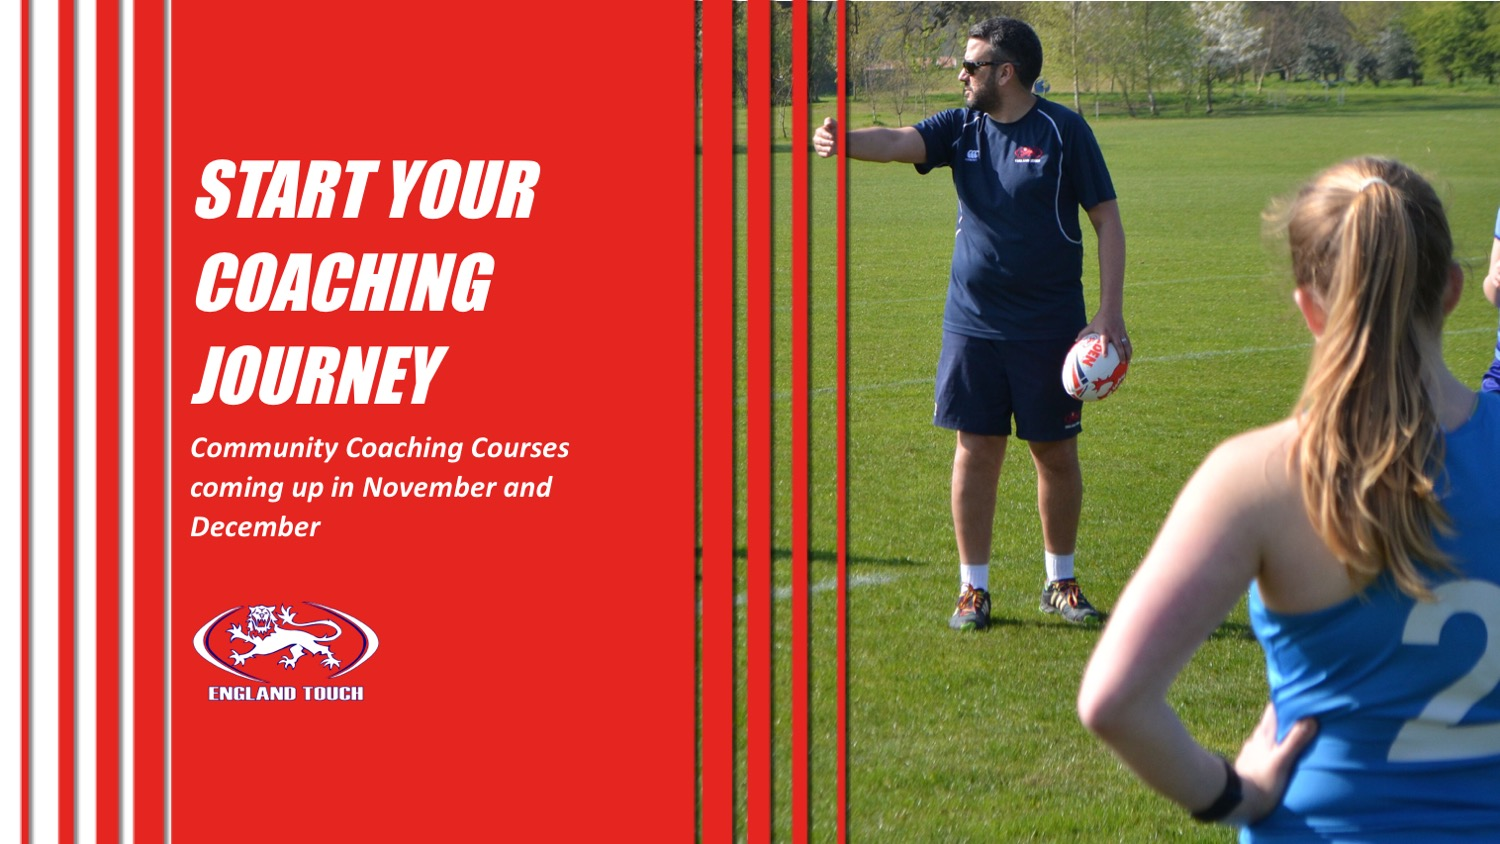 Community Coaching Courses coming up in November and December